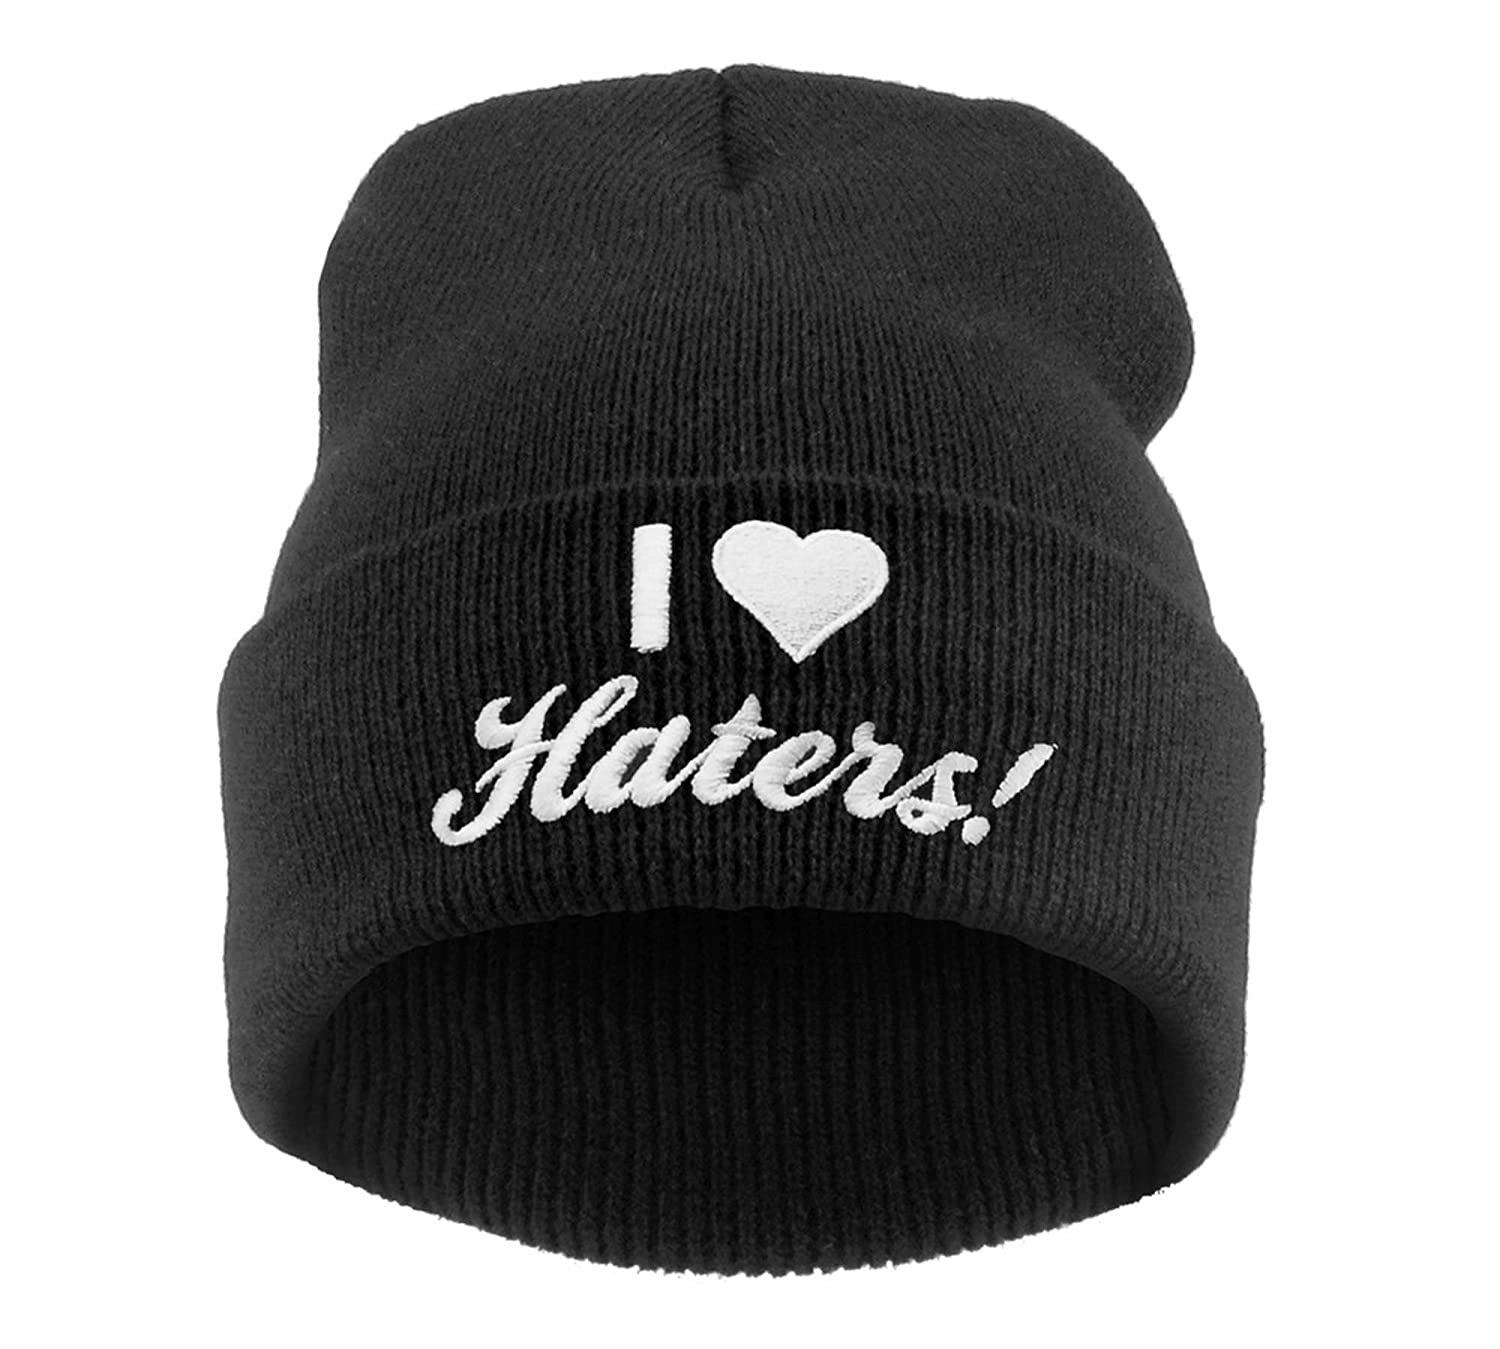 Beanie Mütze Damen Herren Bad Hair Day Easy Witch Trill Bastard Meow Swag Wasted DIE Fake I love Hater Commes des 1994 HAT HATS, Morefazltd (TM) (I love Hater)